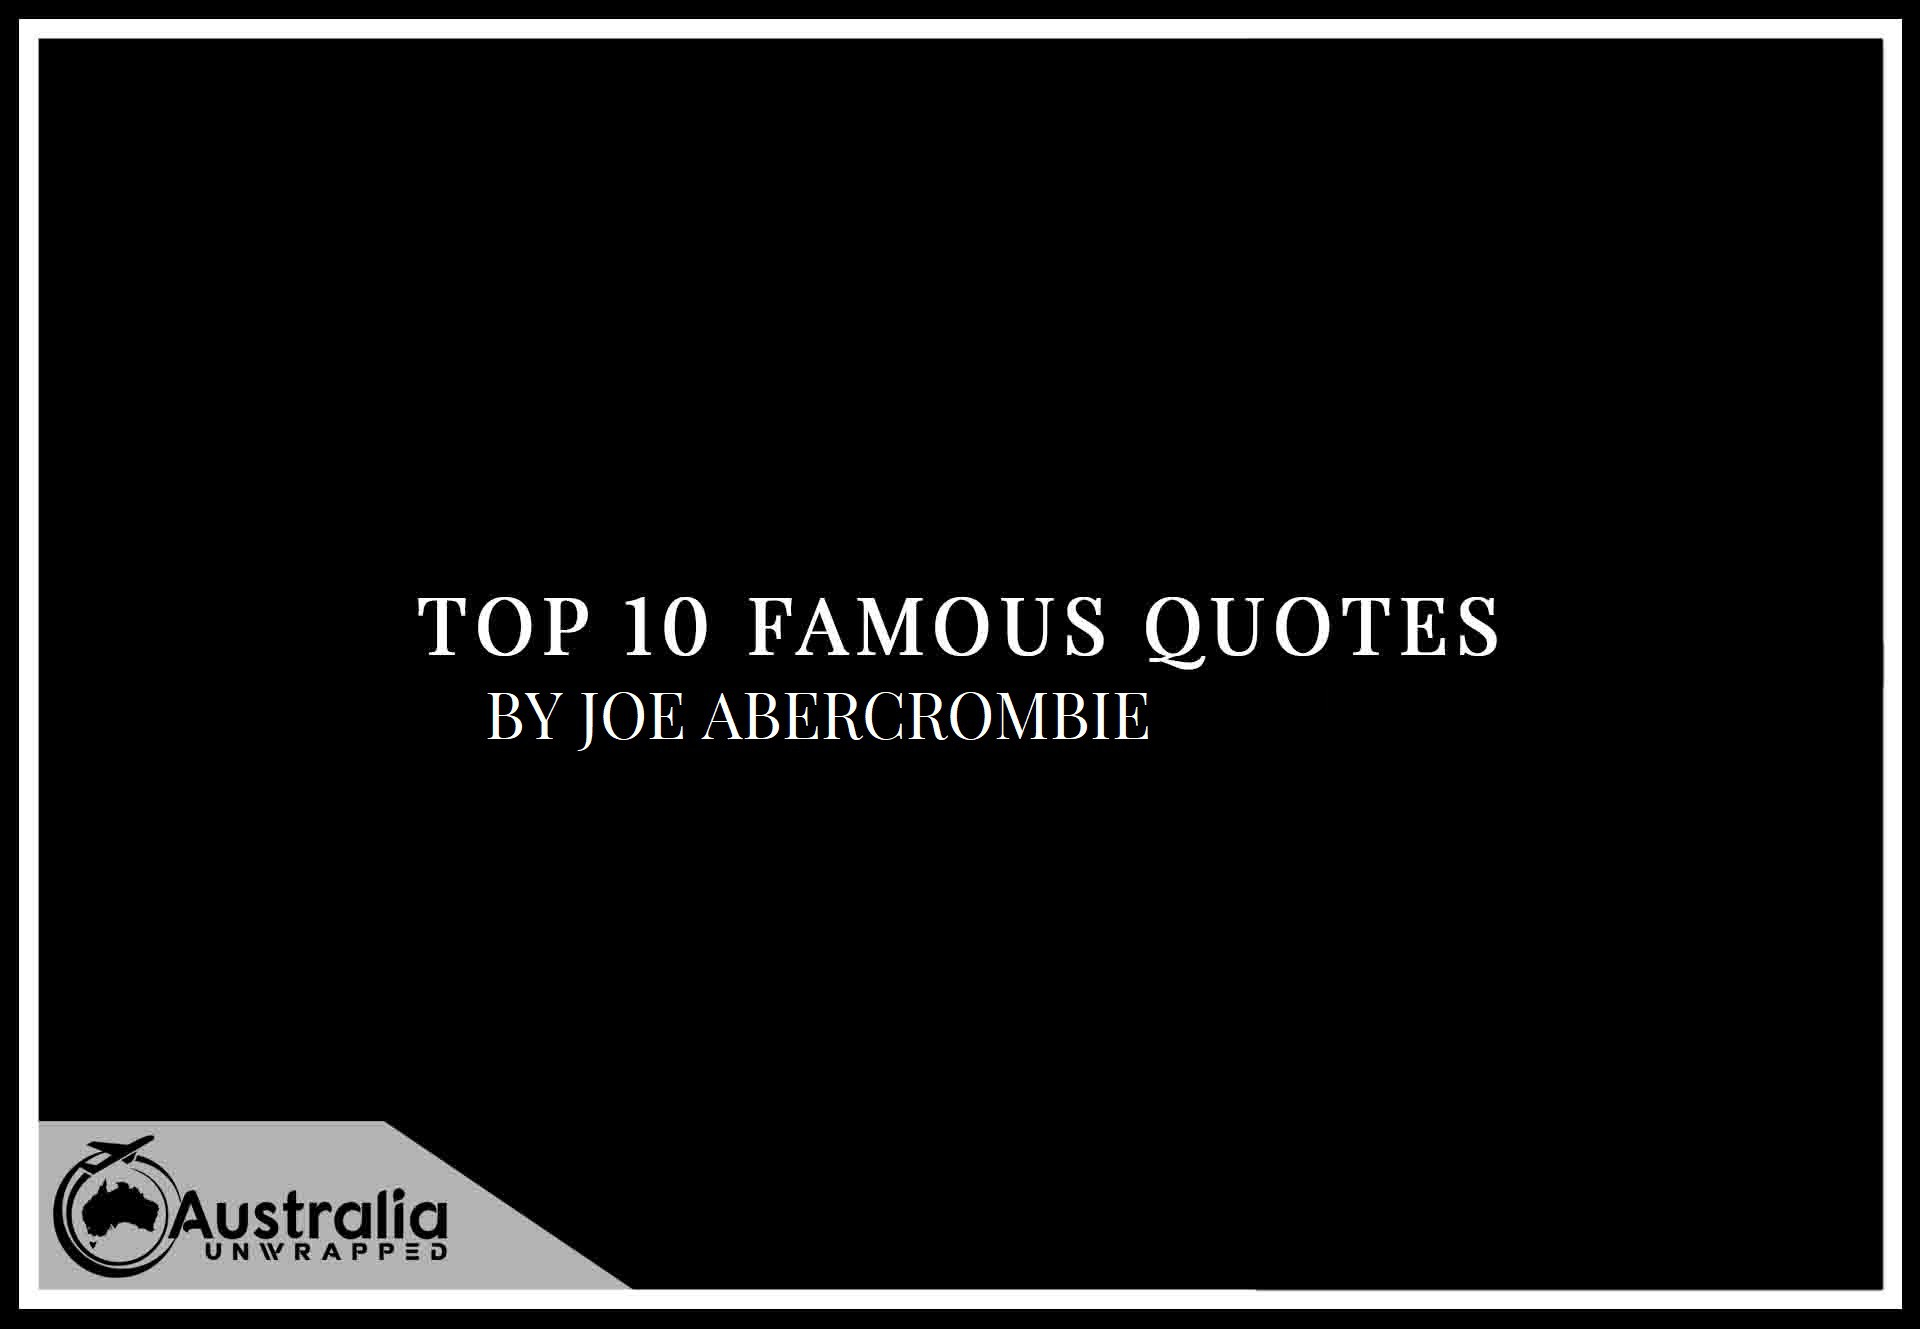 Top 10 Famous Quotes by Author Joe Abercrombie